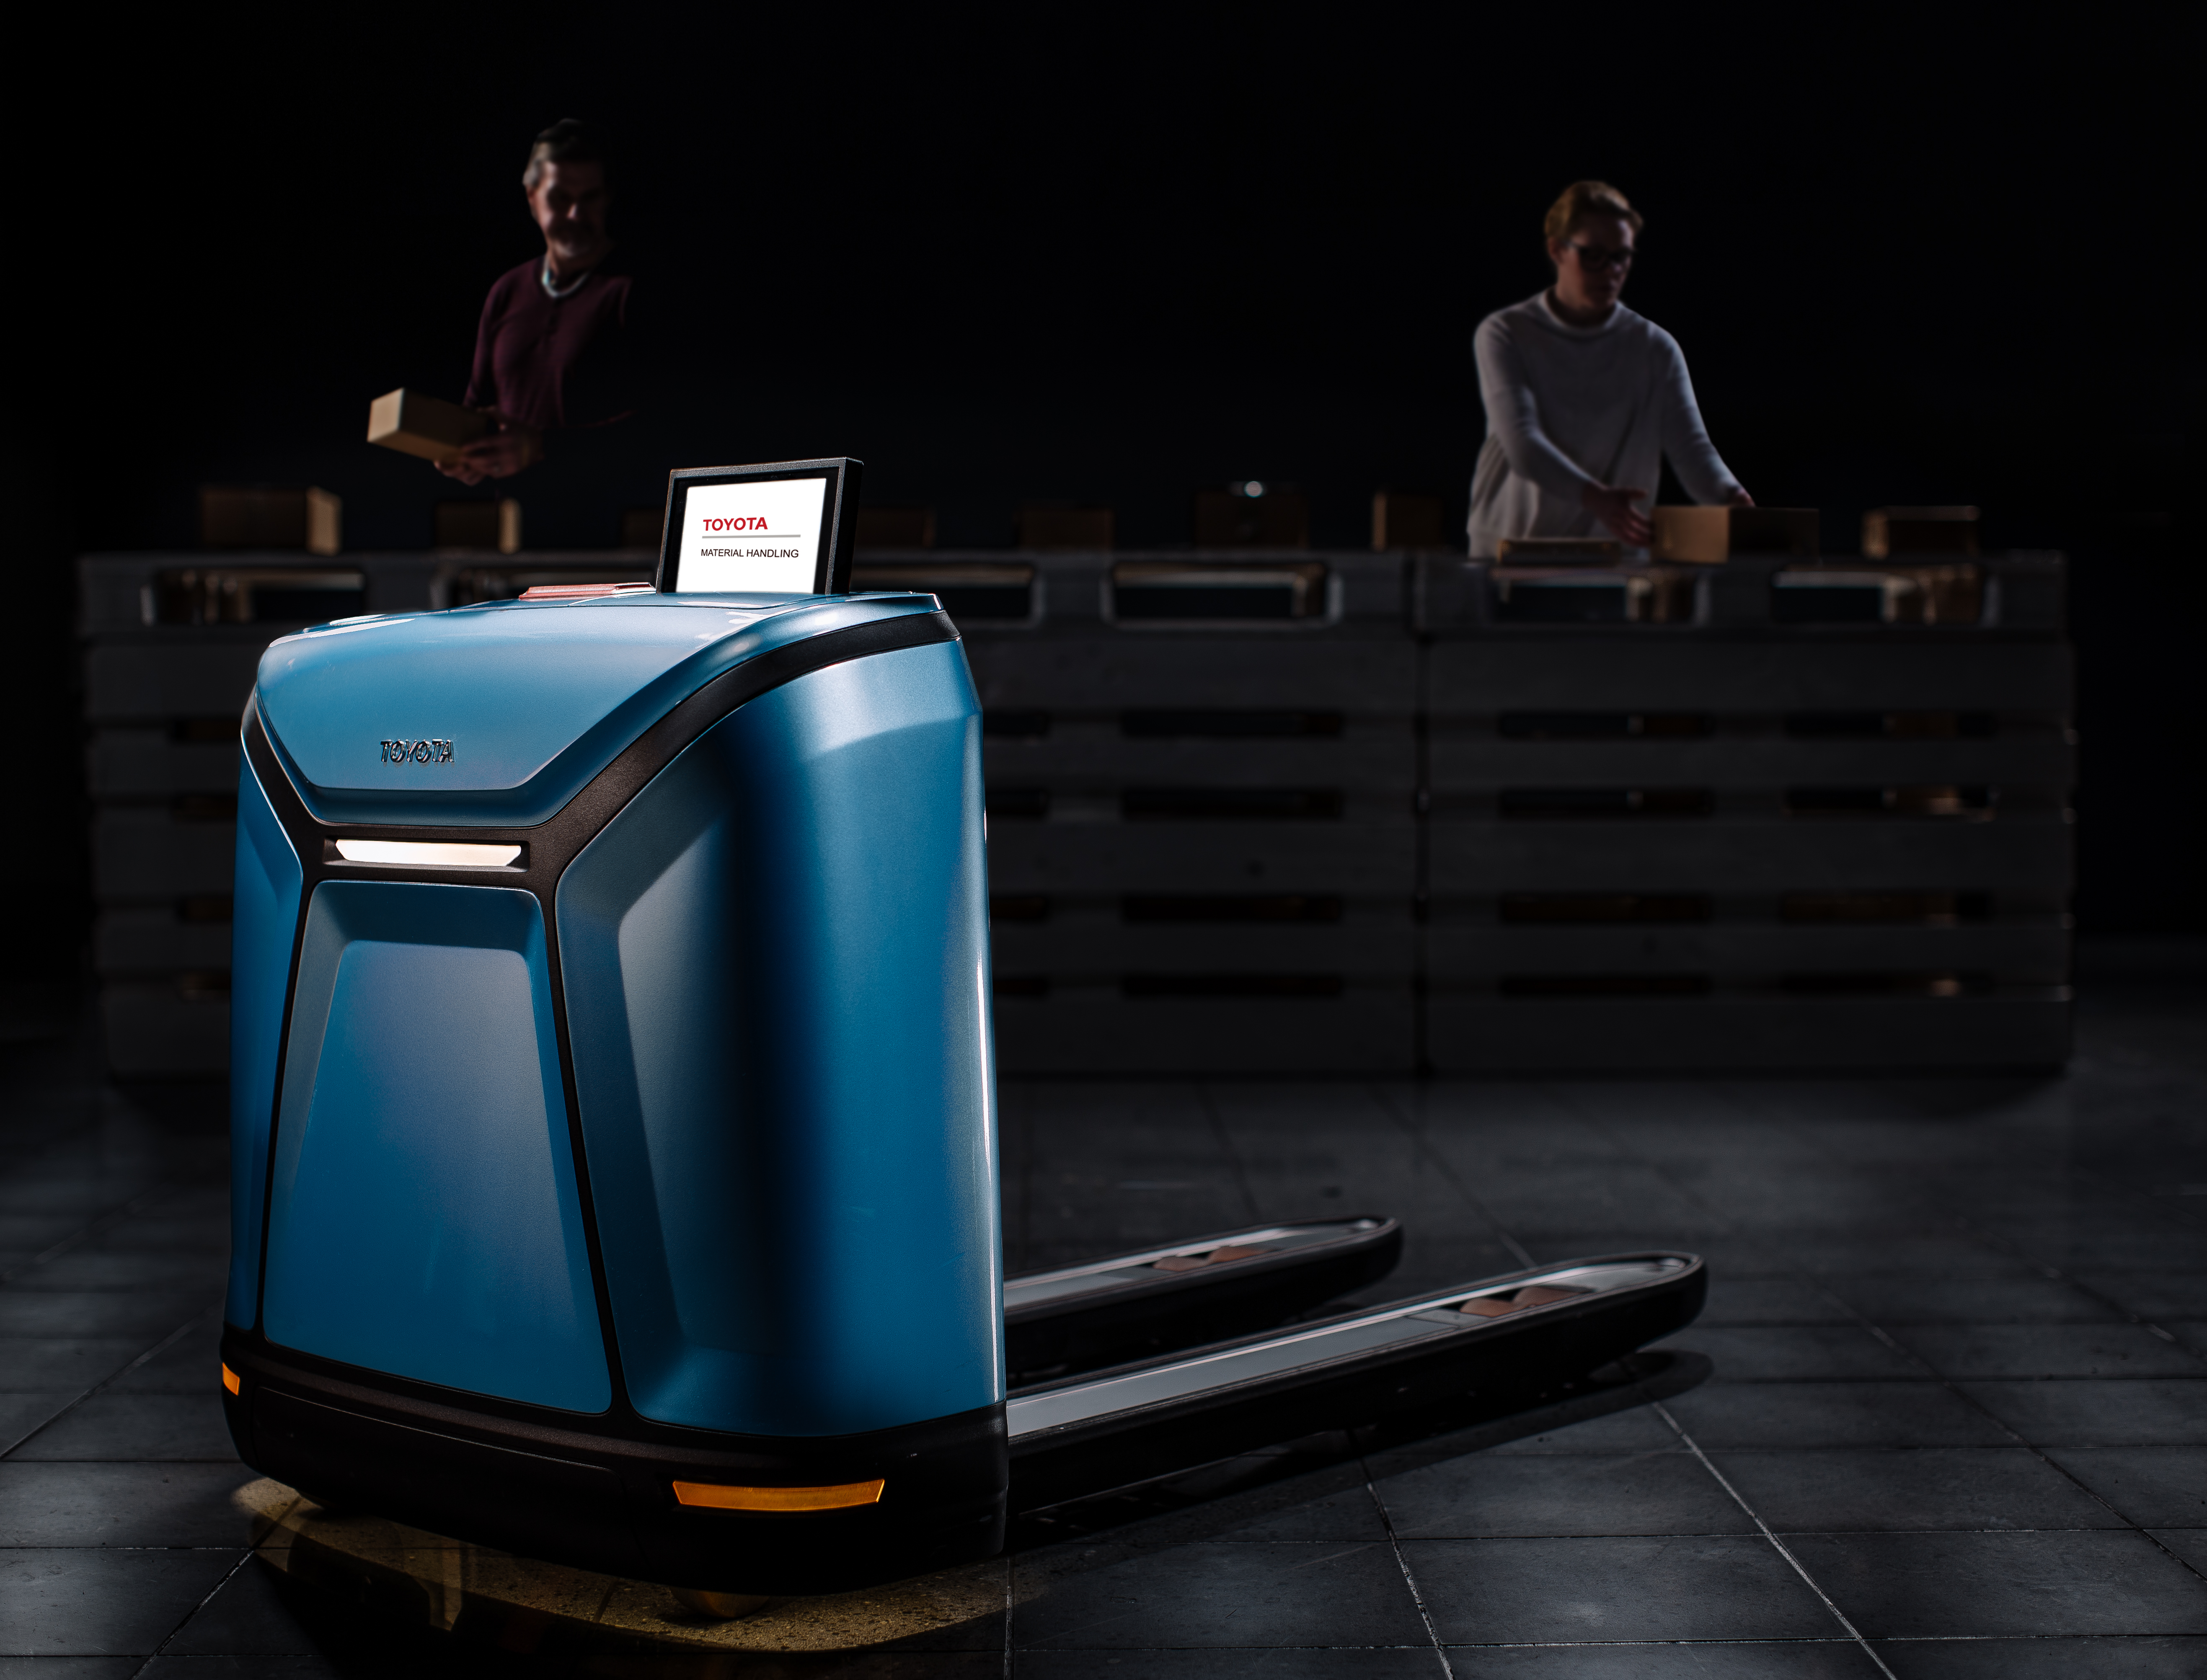 Photo of a sleek blue drone with arms similar to that of a fork lift, and two people working at a conveyor belt in the background